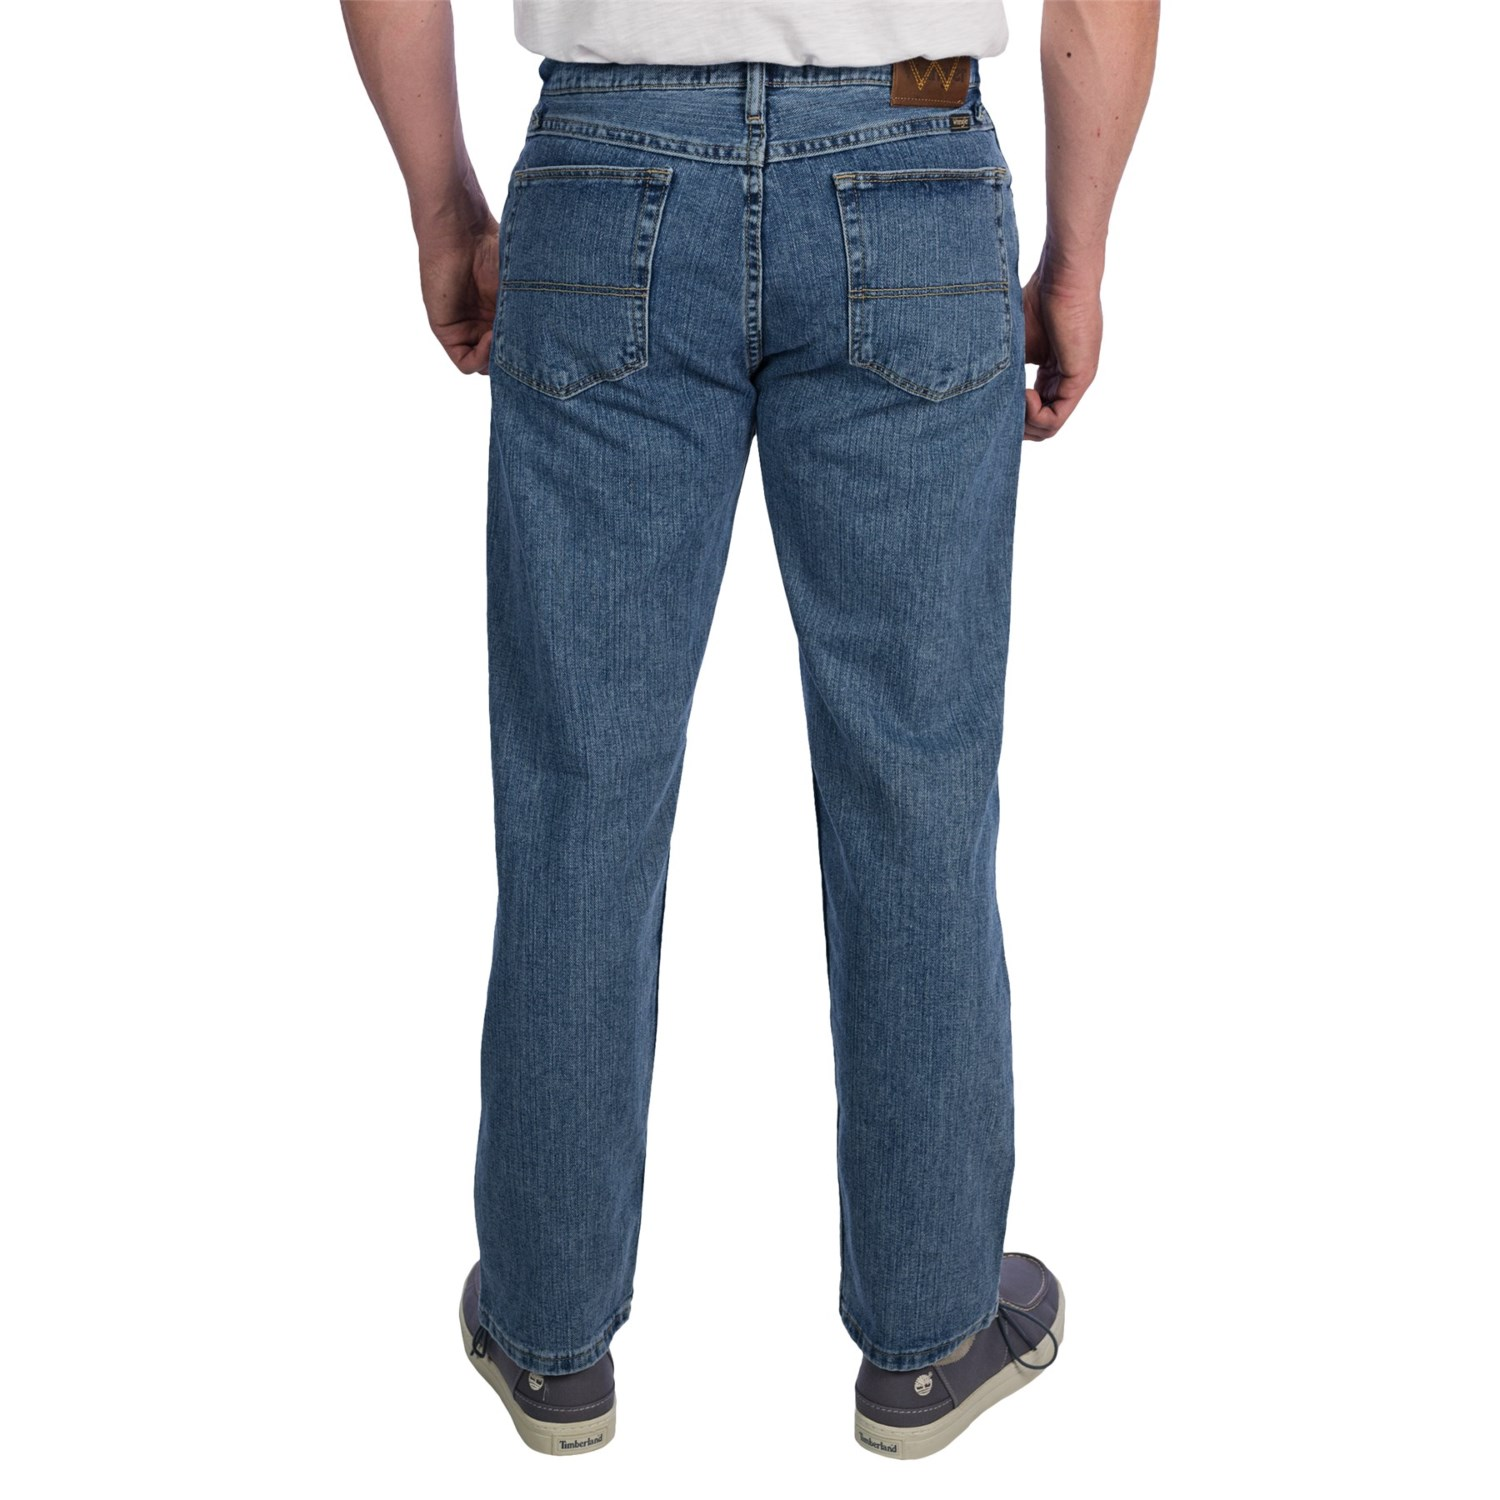 relaxed fit jeans for men 7772t save 36